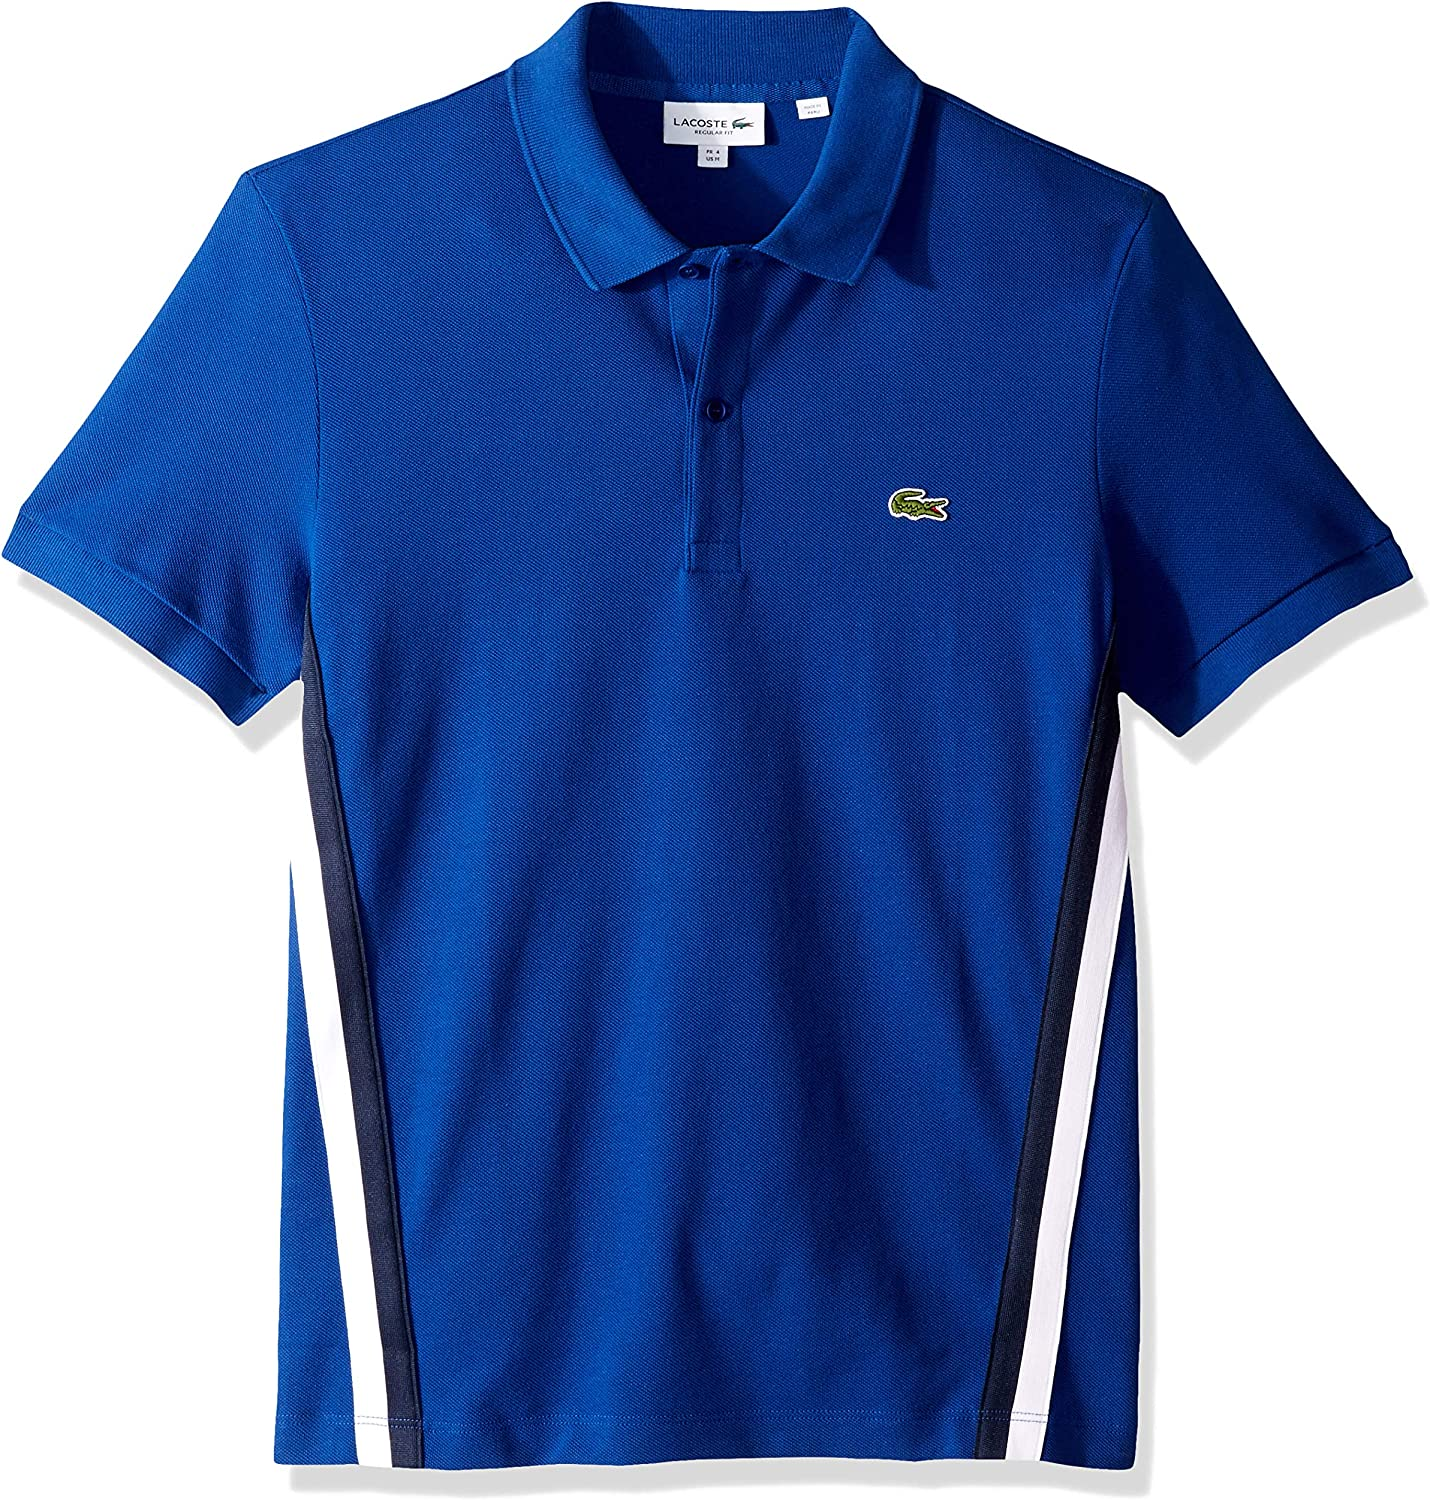 Lacoste Mens S//S Striped Pique Polo Regular FIT Shirt